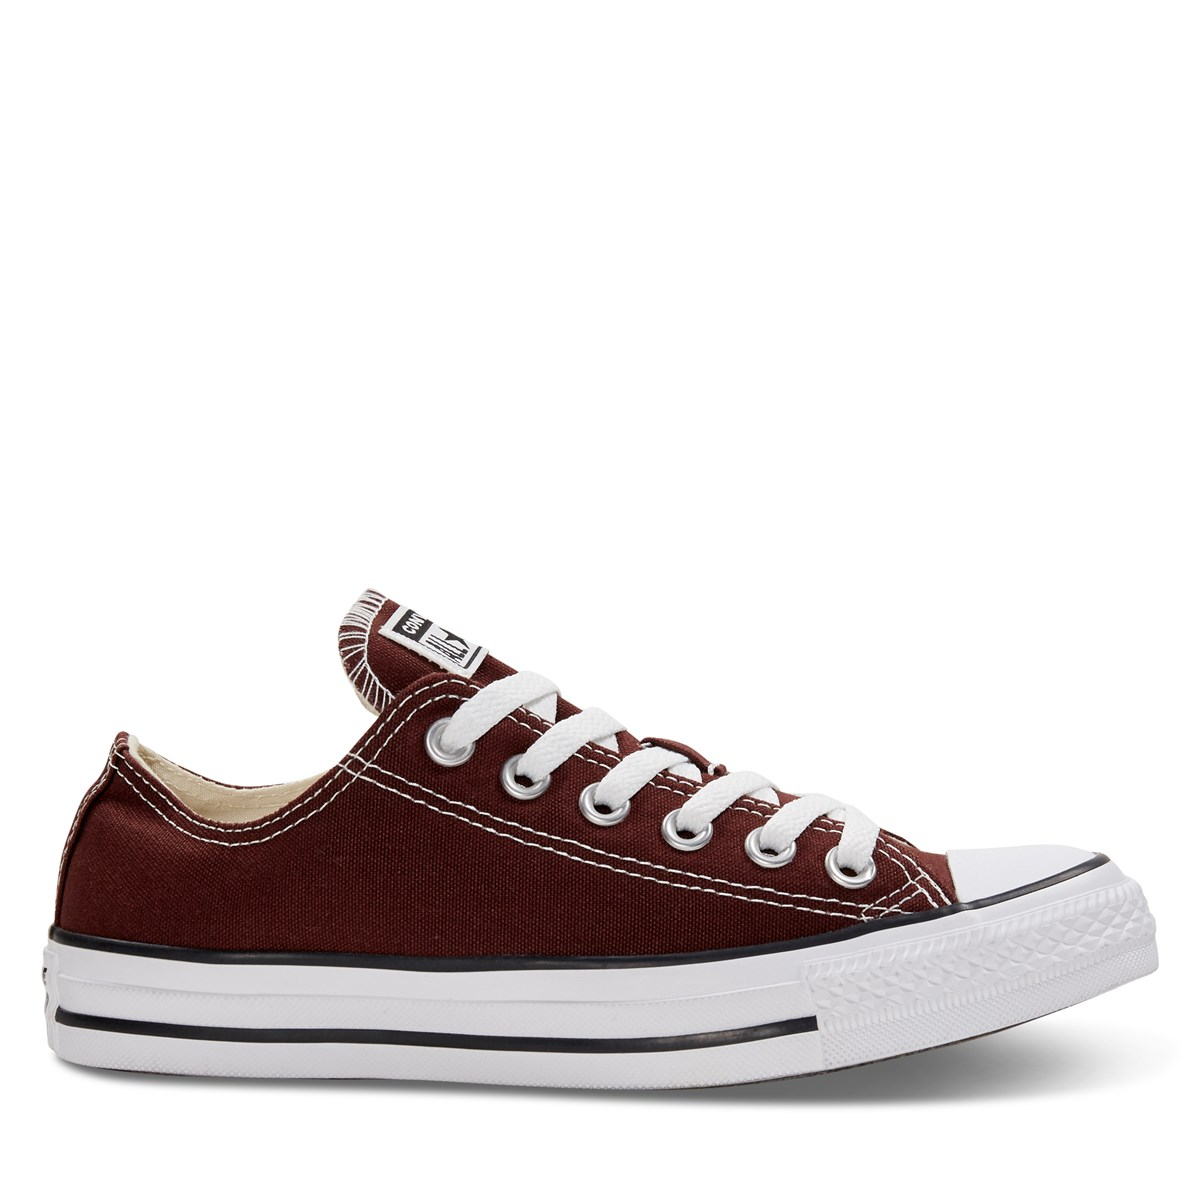 Women's Chuck Taylor All Star Low Top Sneakers in Brown